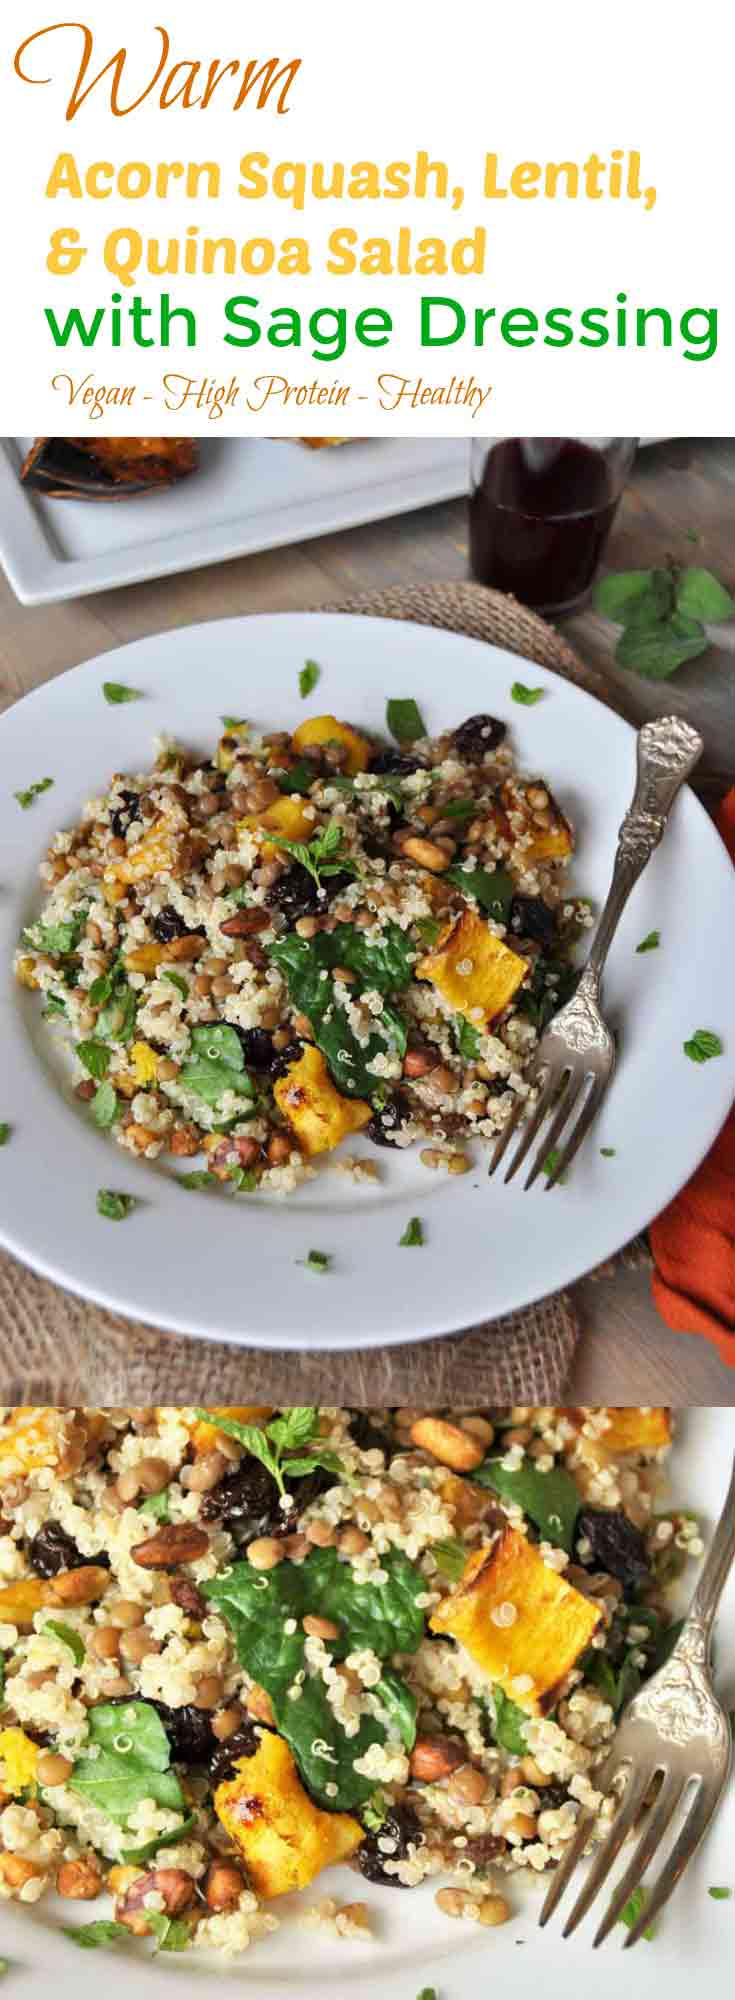 This warm salad with roasted acorn squash, lentils, quinoa, and sage dressing is perfect for fall! www.veganosity.com